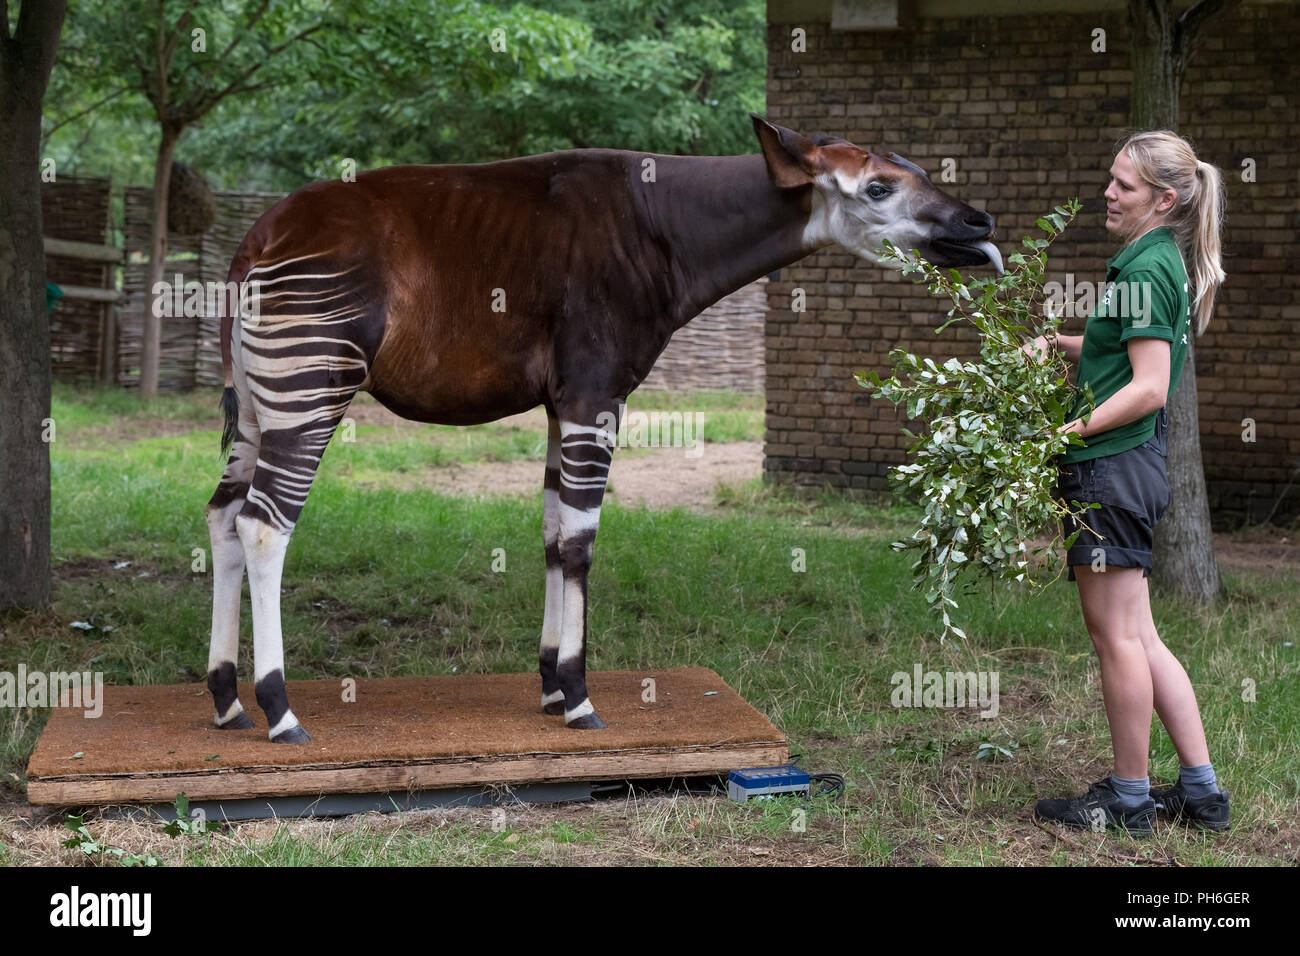 London, UK. 23rd August 2018. Annual animals weigh-in and measure to record vital statistics at ZSL London Zoo. Credit: Guy Corbishley Stock Photo